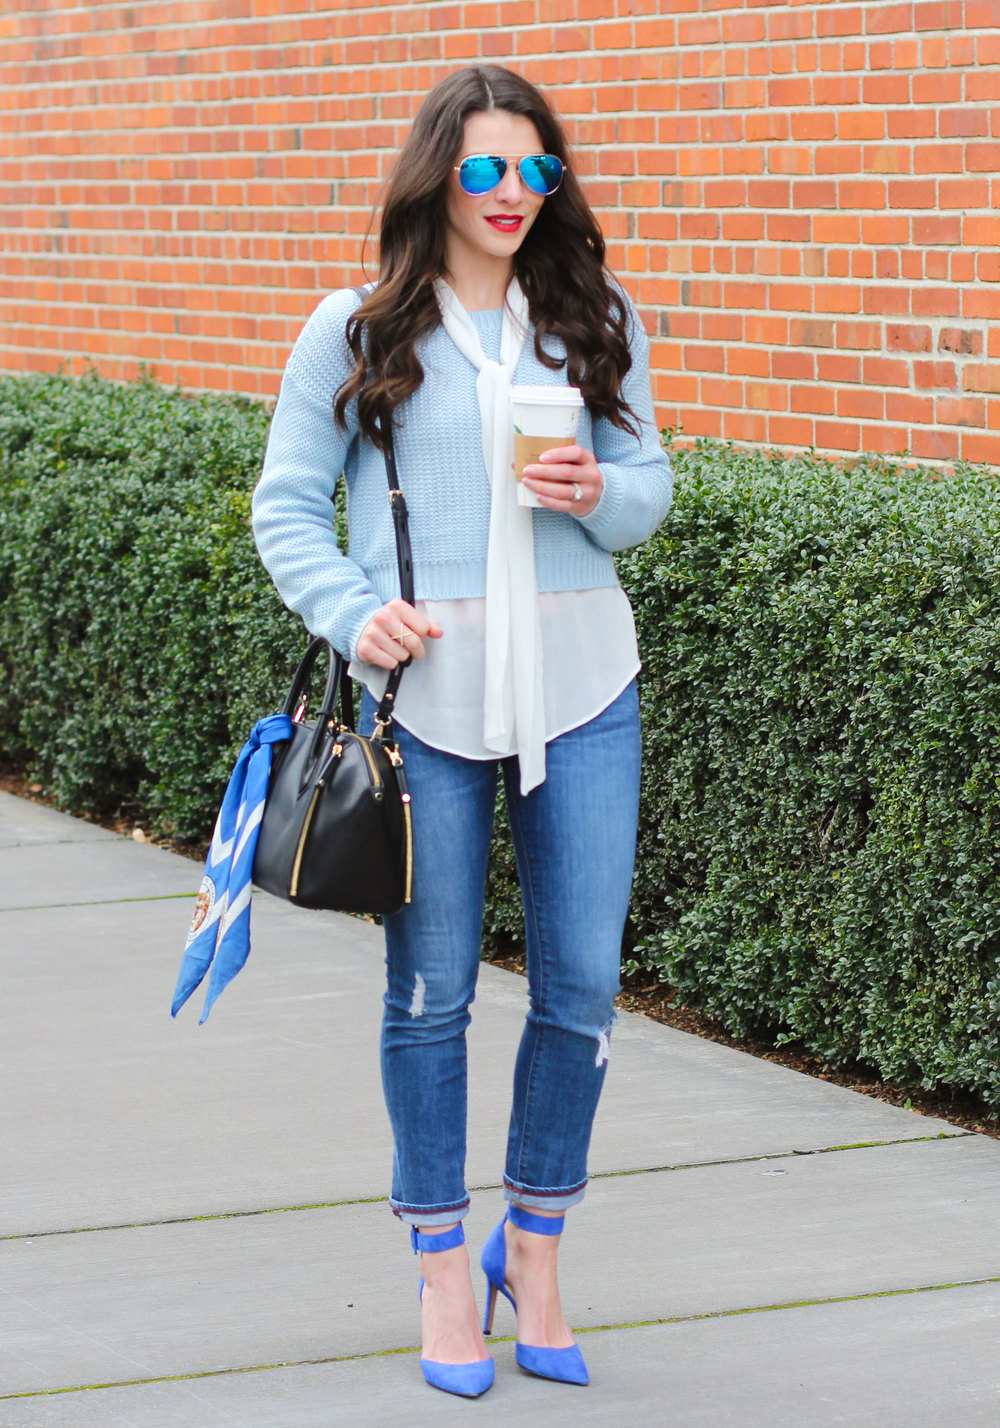 Winter Outfit, Cropped Sweater with Bow Blouse, Blue Mirrored Aviator Sunglasses, Rebecca Minkoff Mini Perry Satchel, Scarf Bag Accessory, Blue Suede Pumps